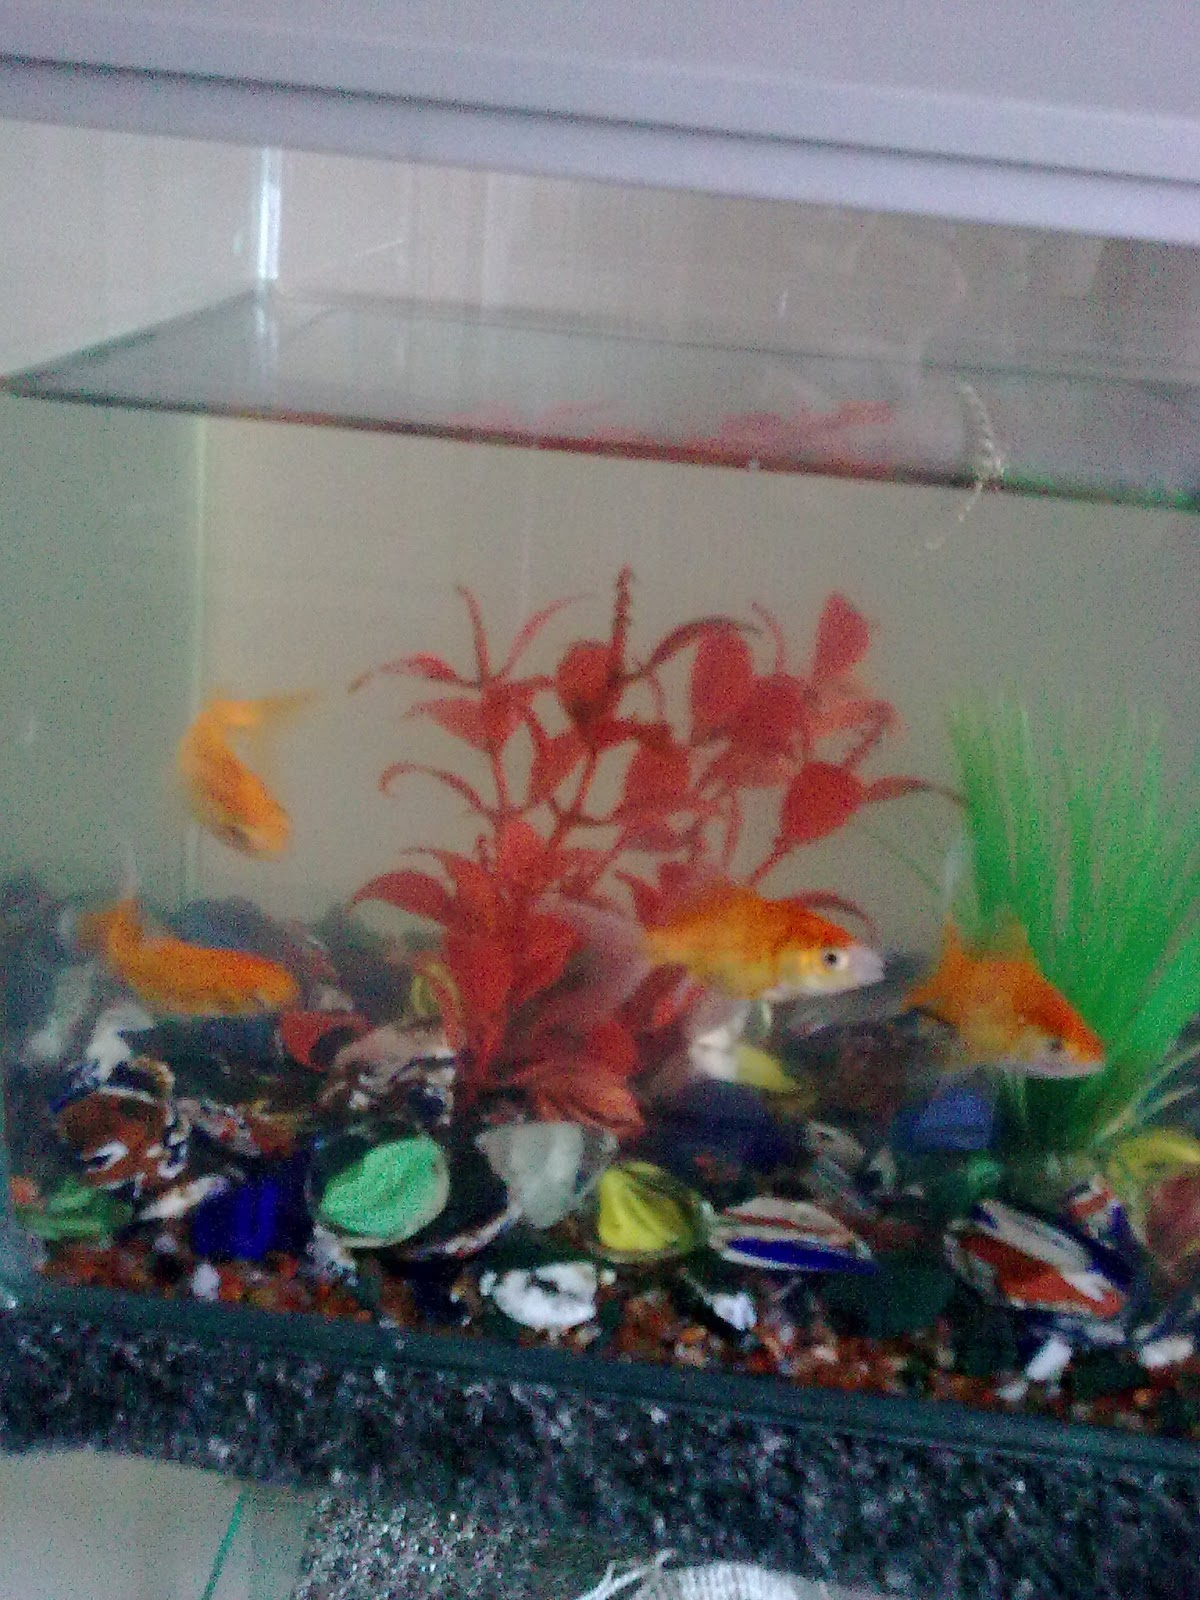 feng shui simple cures why fishes die feng shui for fish tank cures fish tank care in feng shui. Black Bedroom Furniture Sets. Home Design Ideas